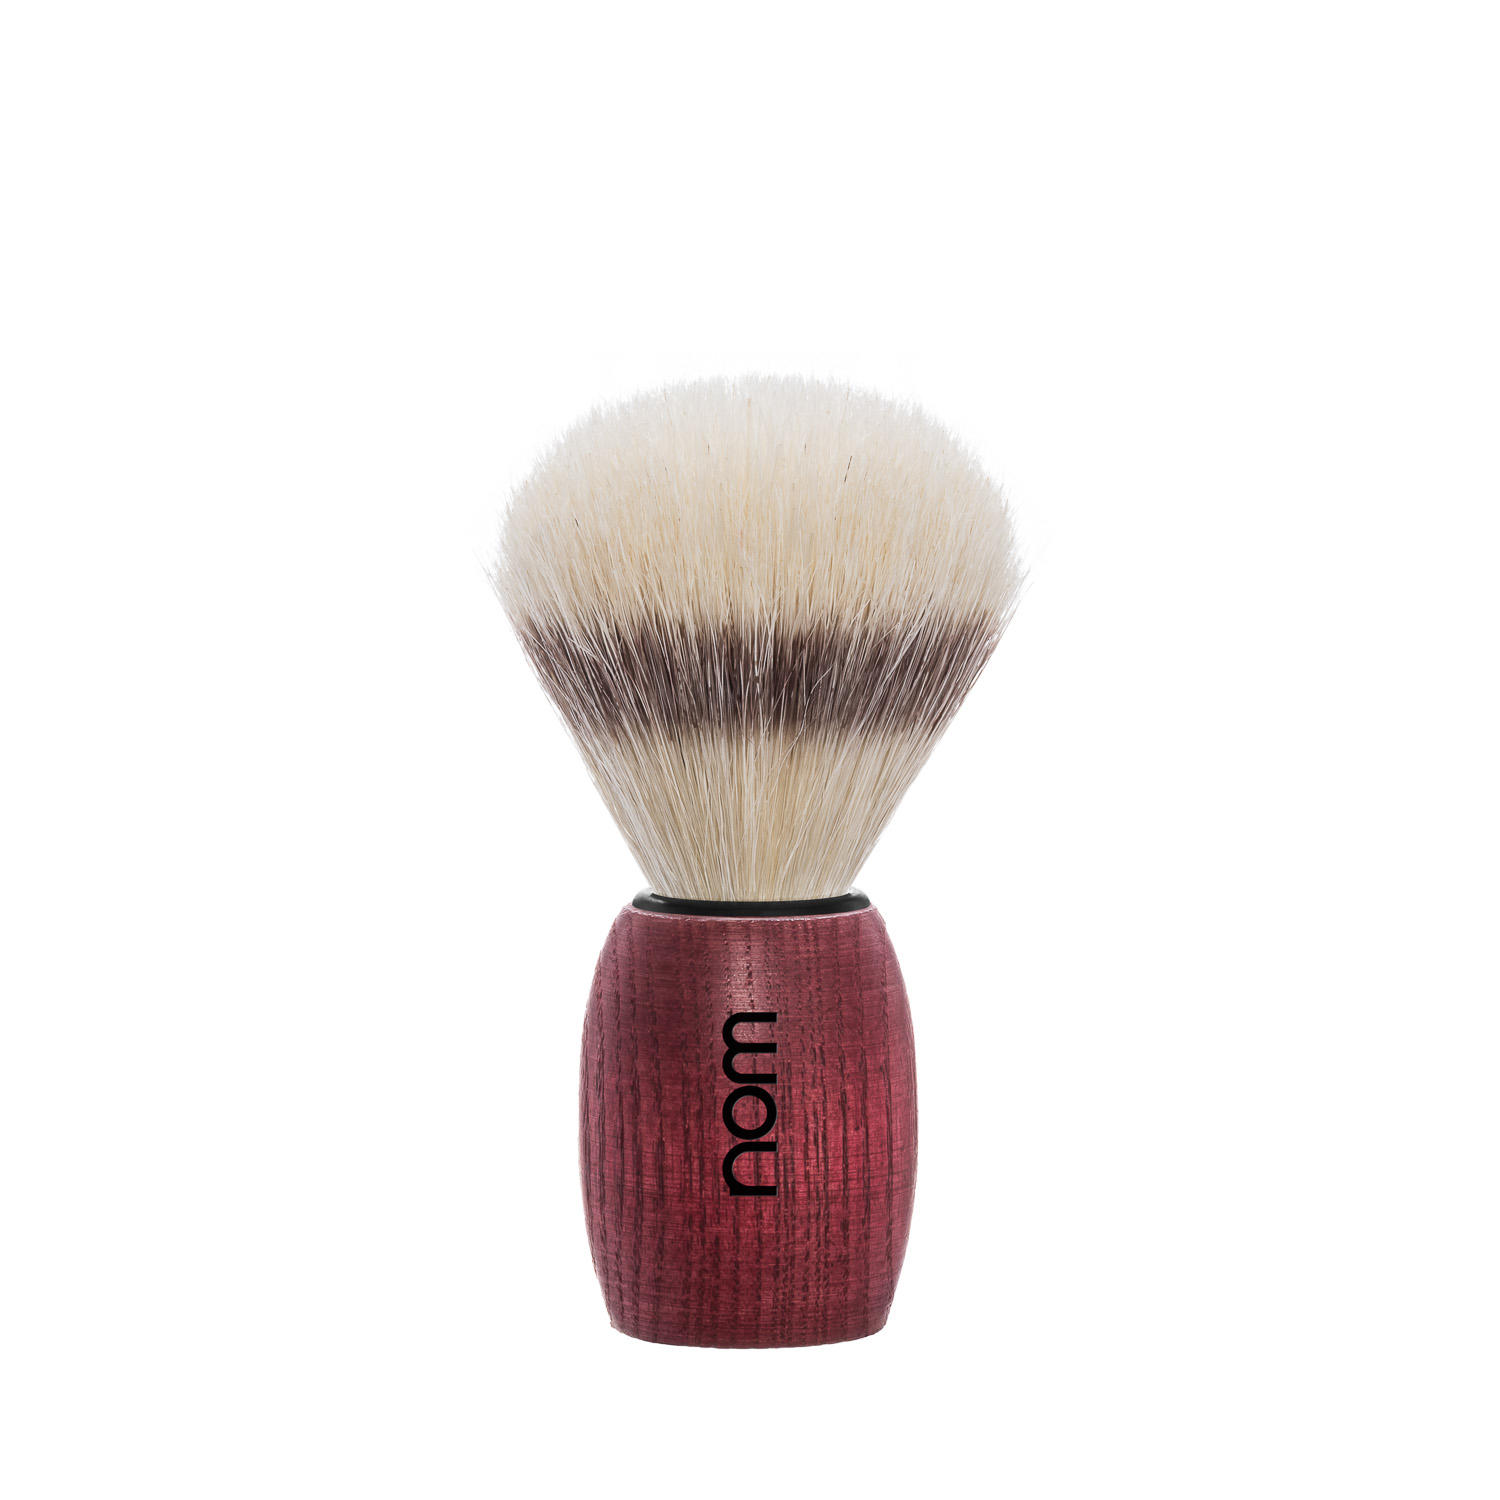 OLE41BA nom OLE, blushed ash, pure bristle shaving brush